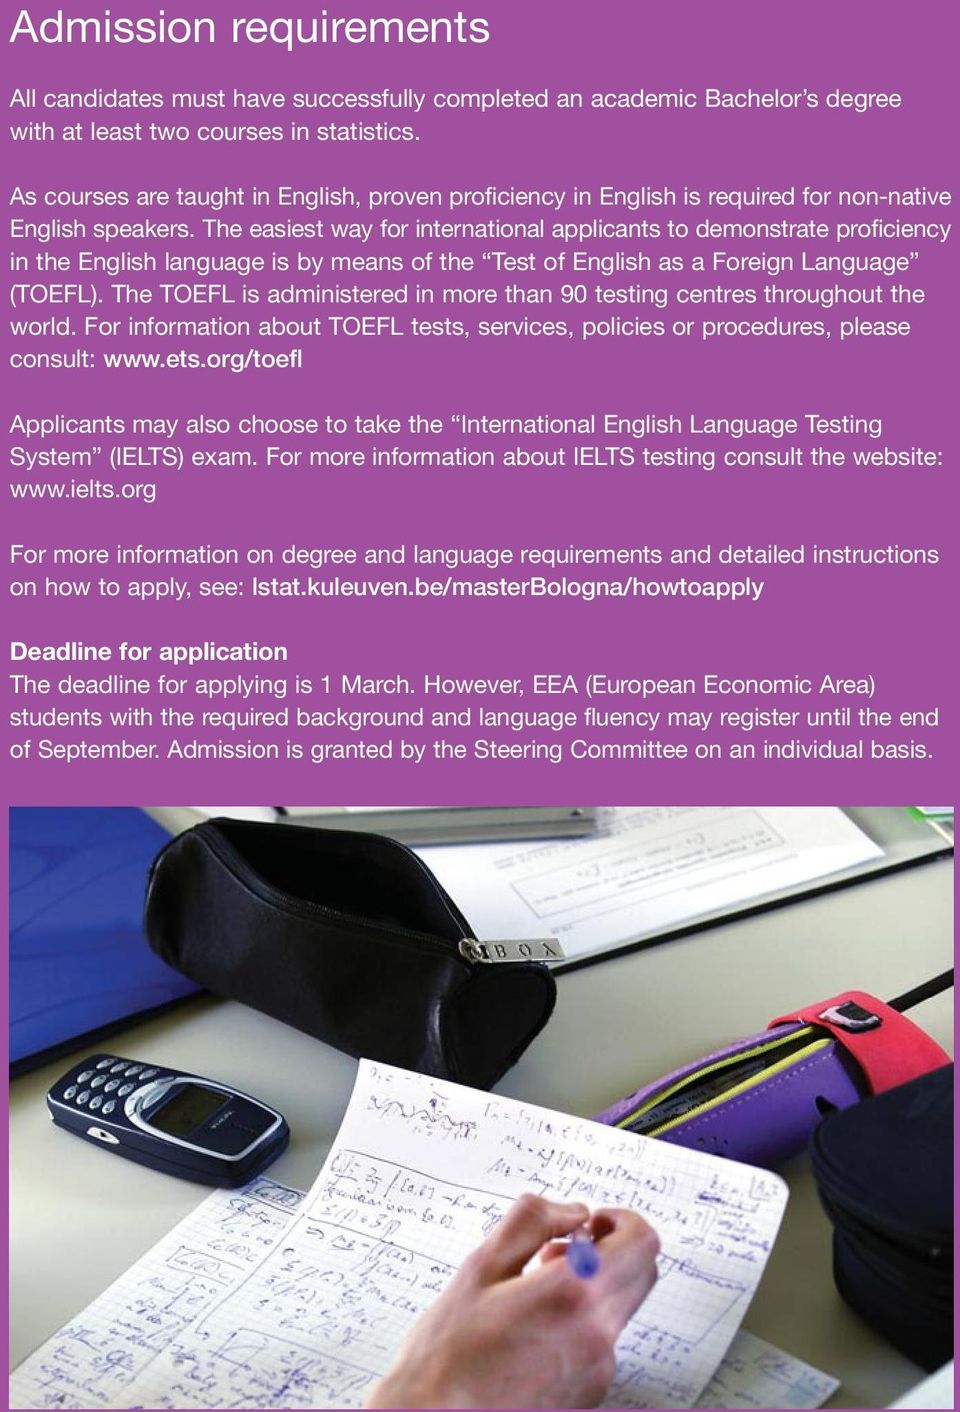 The easiest way for inter national applicants to demonstrate proficiency in the English language is by means of the Test of English as a Foreign Language (TOEFL).